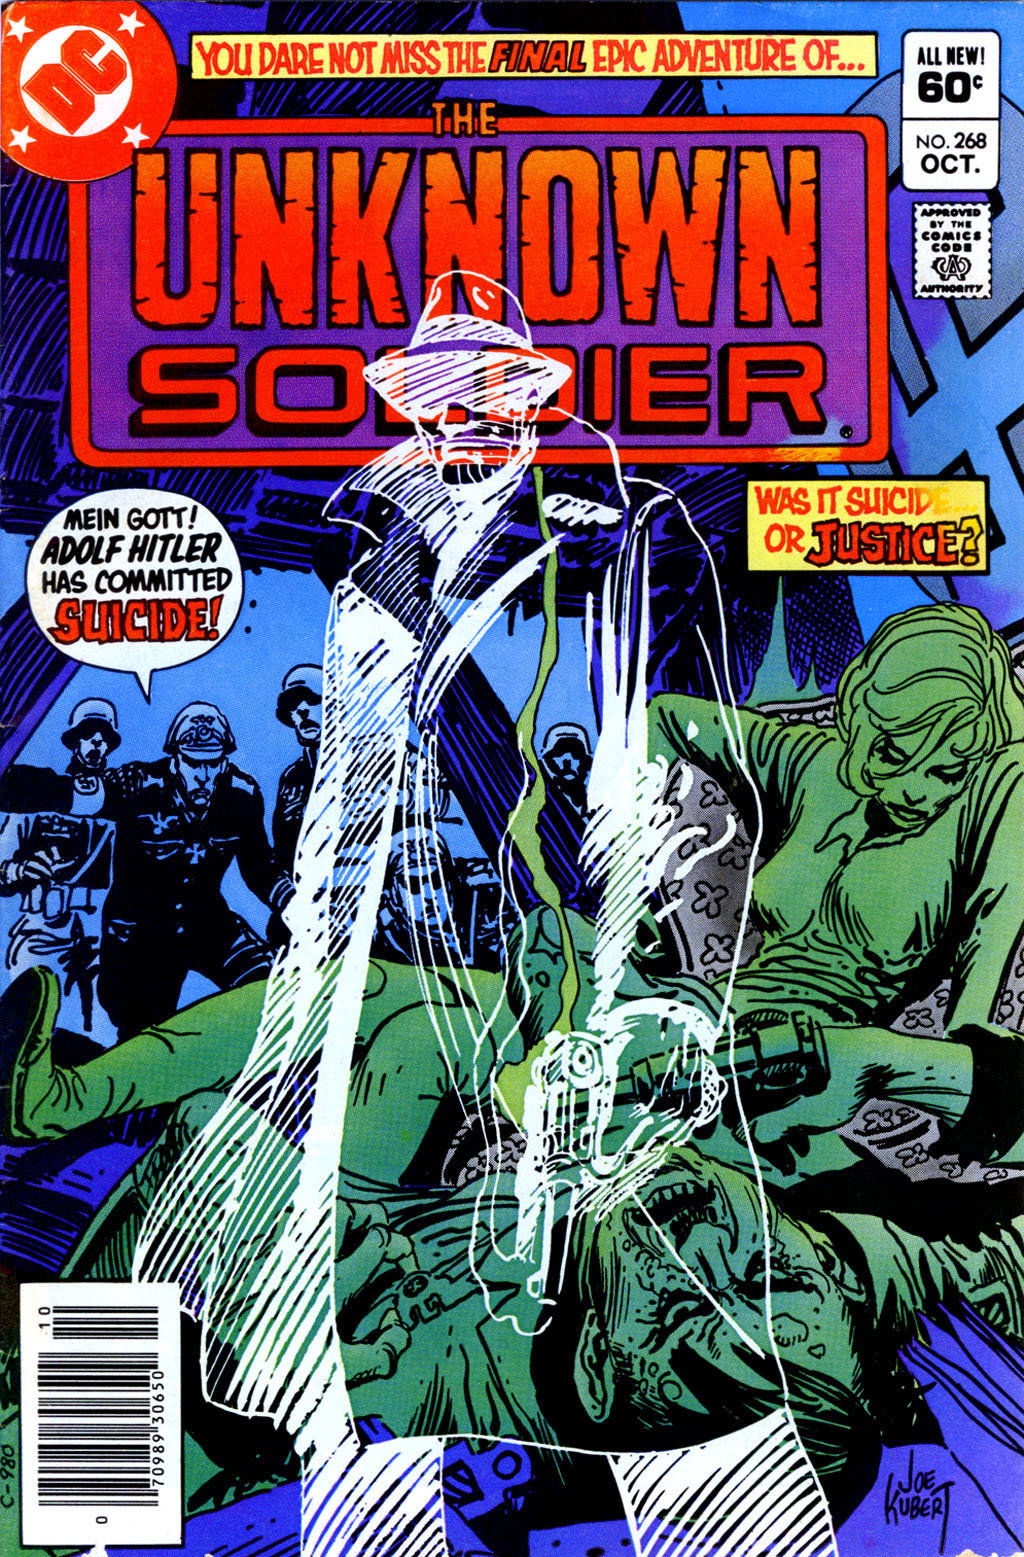 Unknown Soldier (1977) issue 268 - Page 1